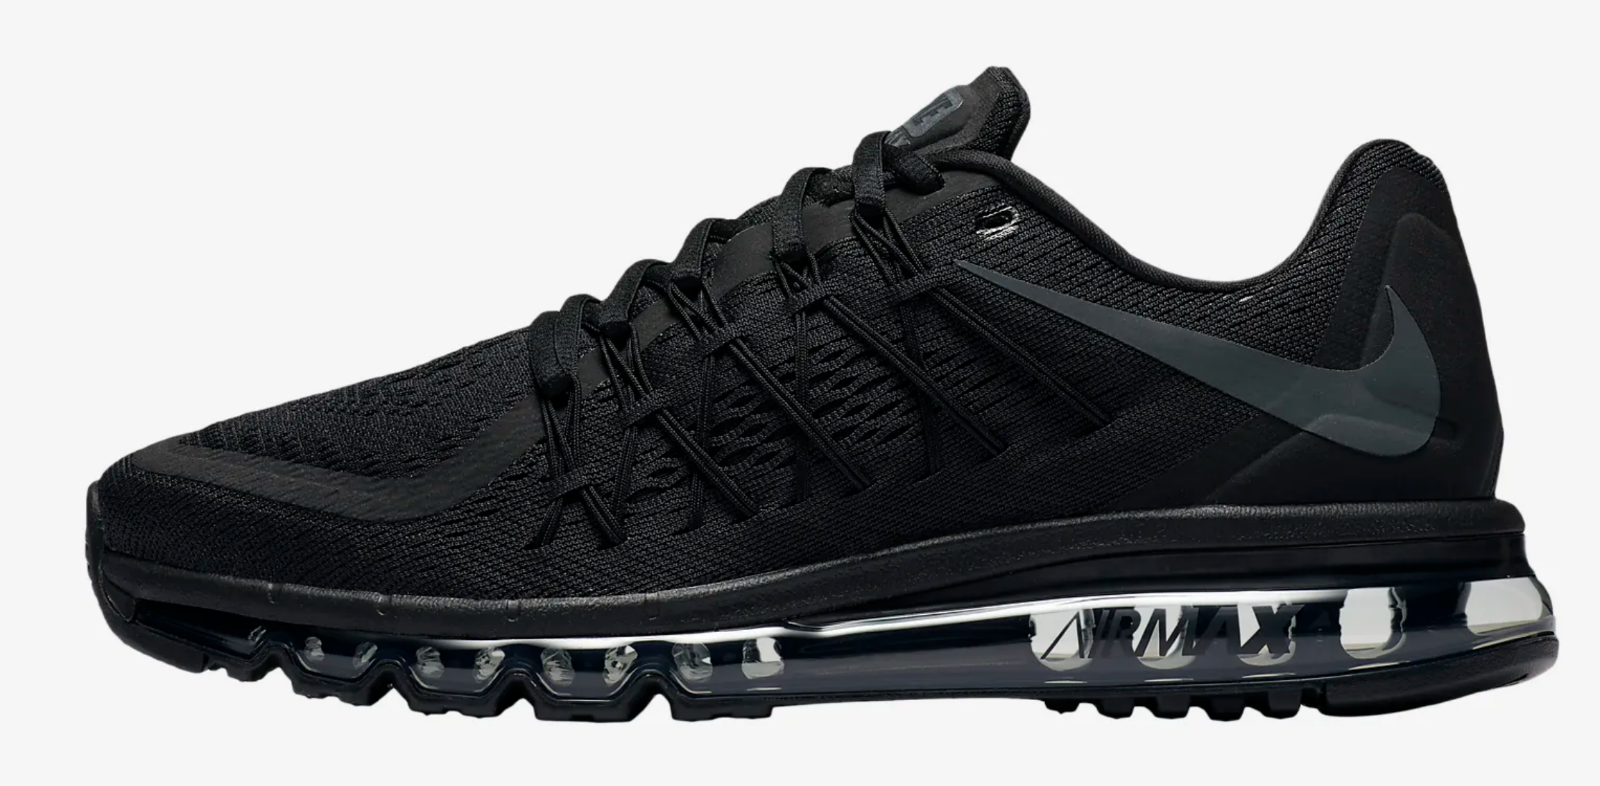 Nike Air Max 2015  Black Black Anthracite  Men's shoes Limited Stock UK 8.5